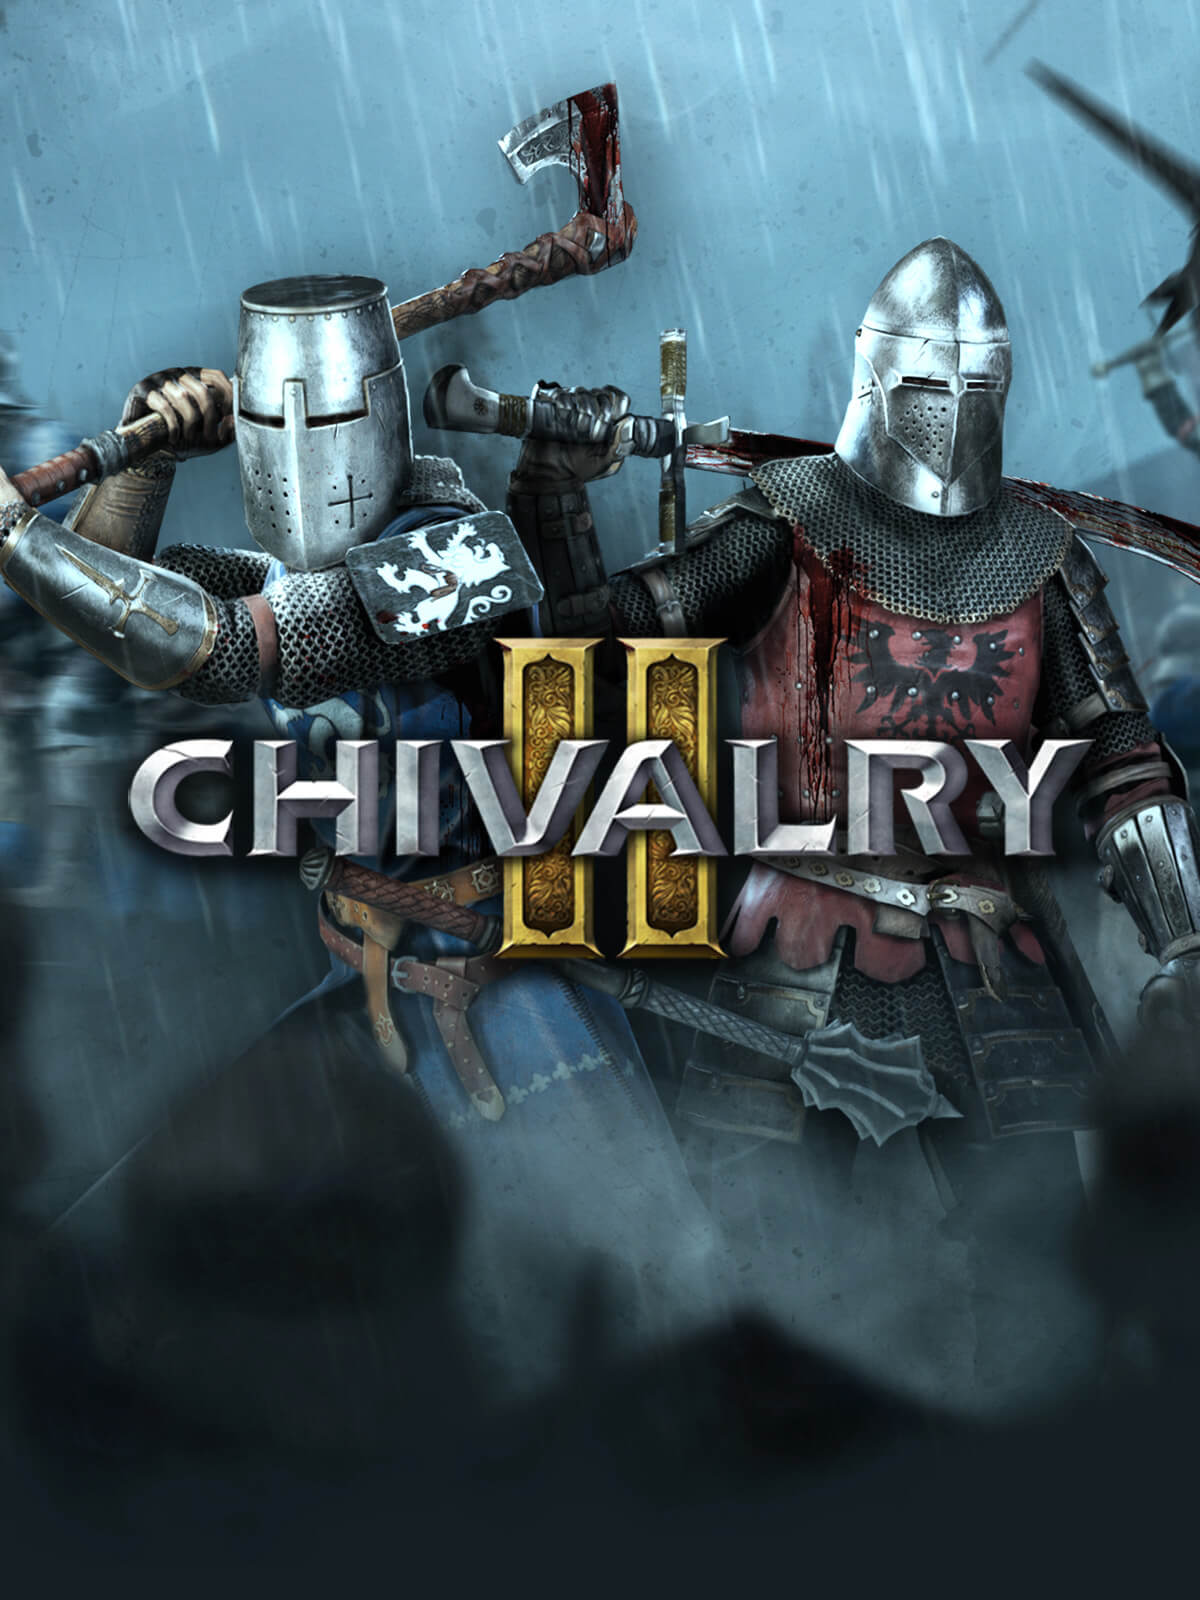 Chivalry 2 Return To The Ultimate Medieval Battlefield